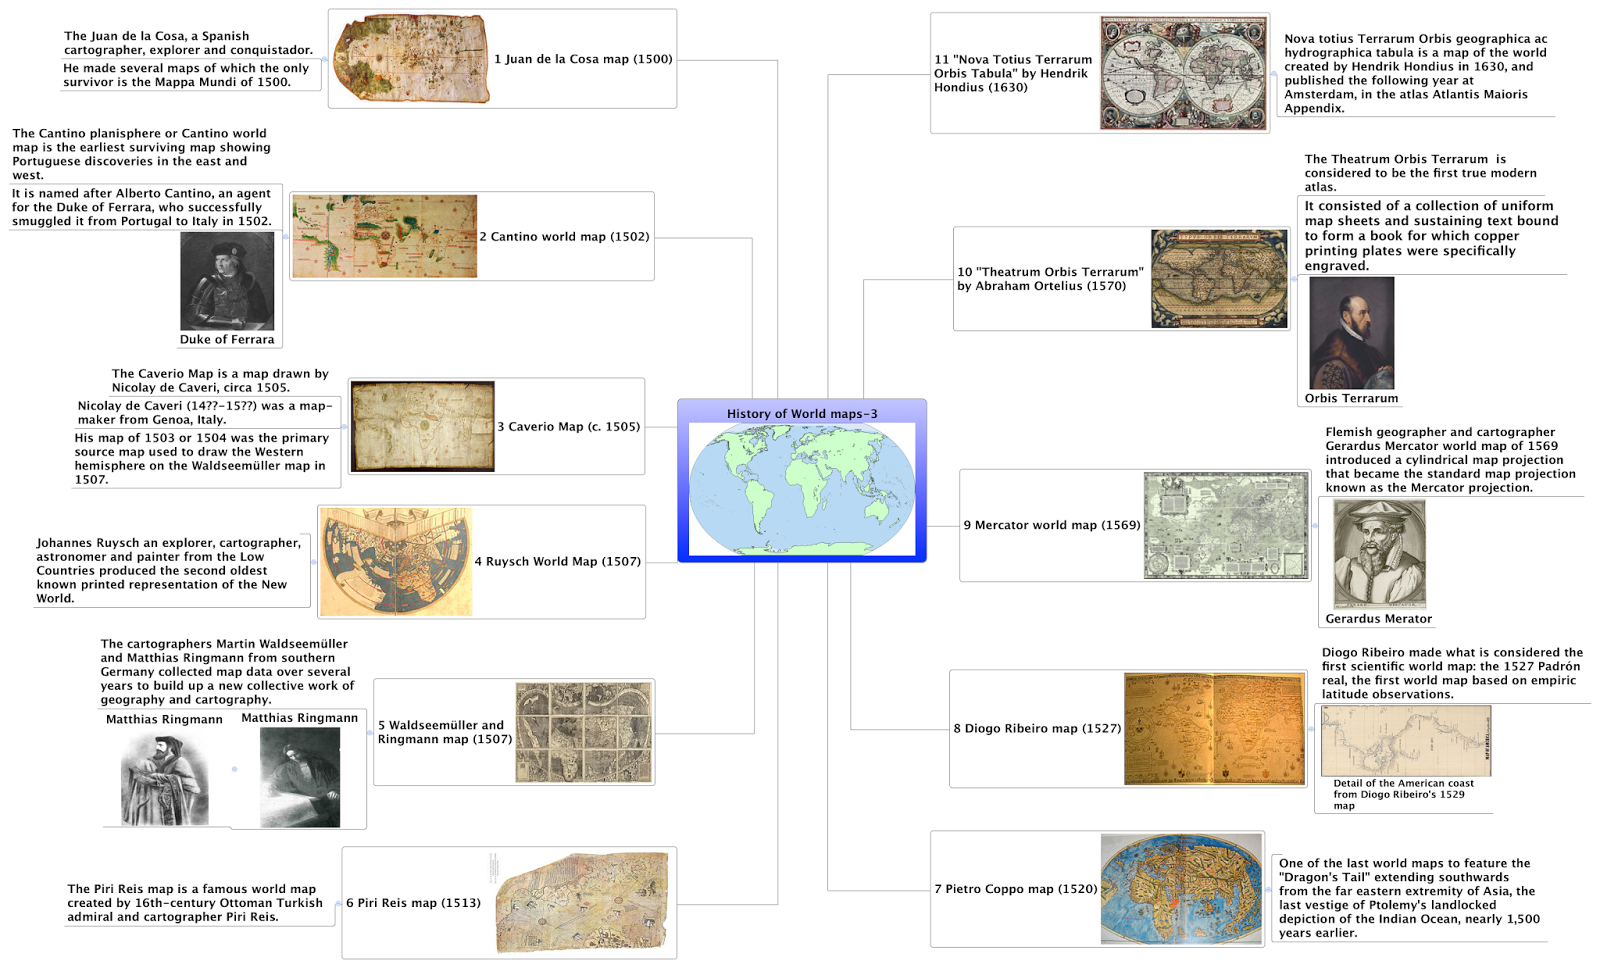 Creative mind maps mind map the history of ancient world map 3 mind map the history of ancient world map 3 gumiabroncs Gallery